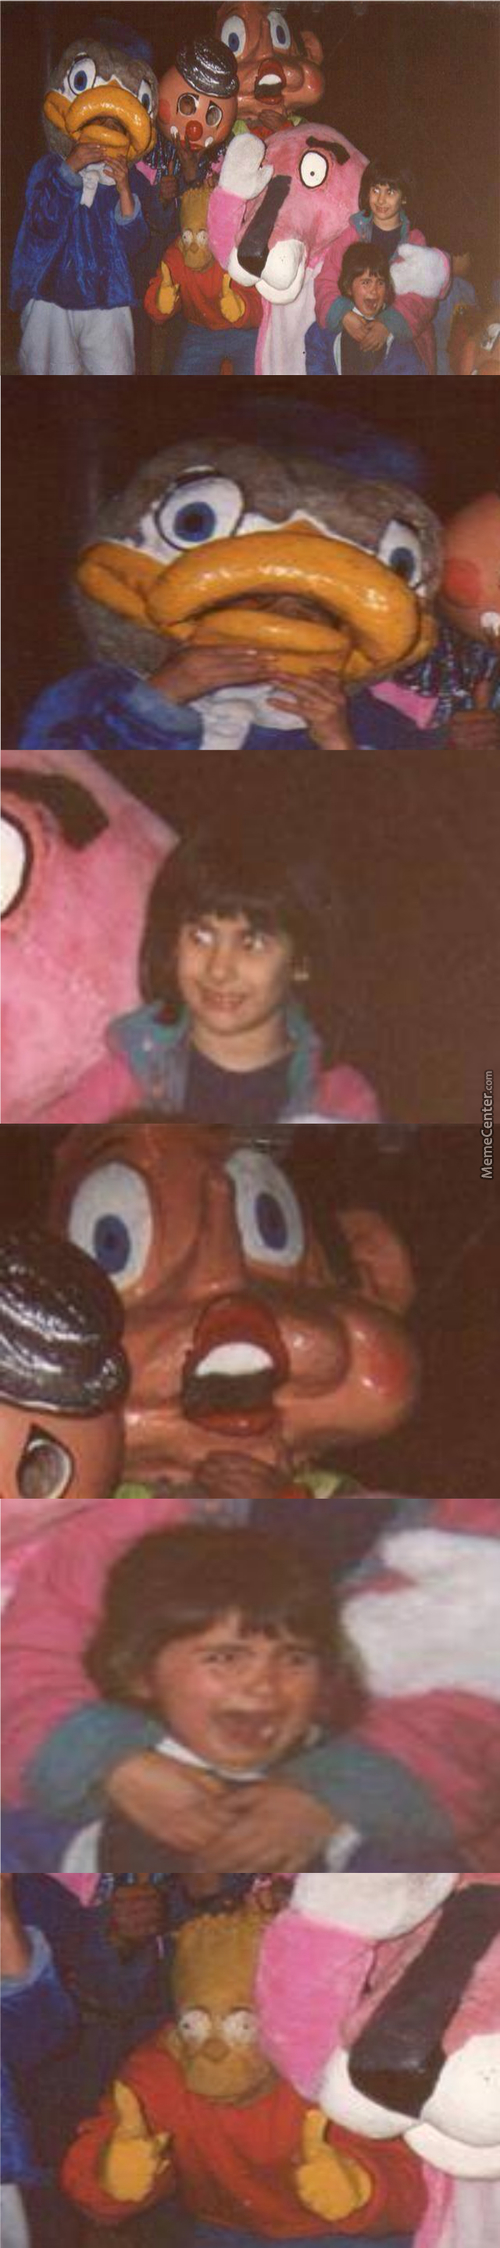 The Only Theme Park With Children's Tears For Admission